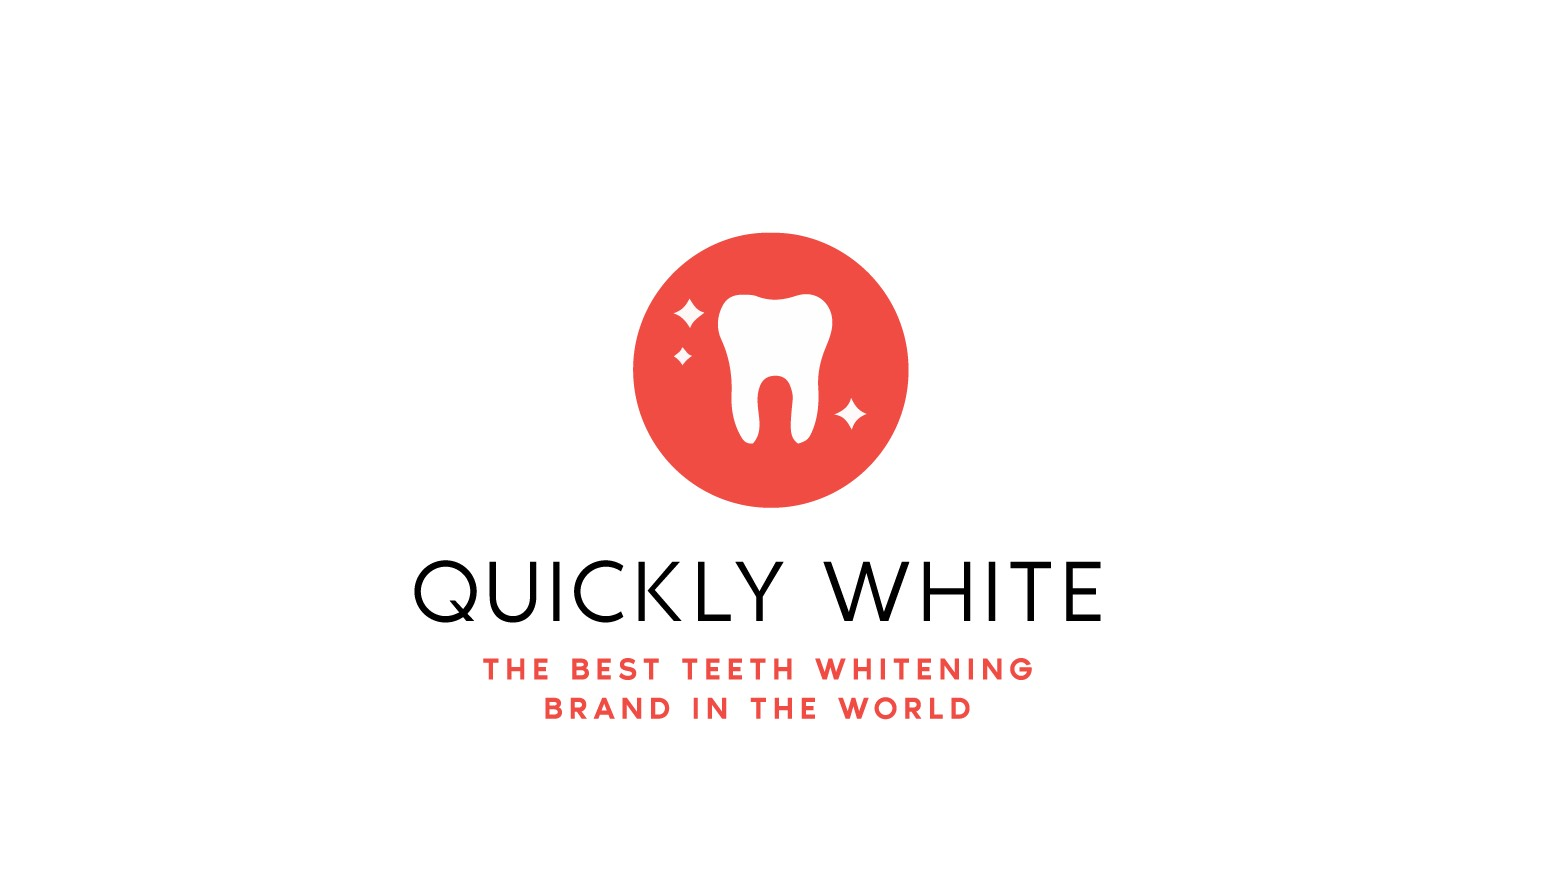 Quickly White